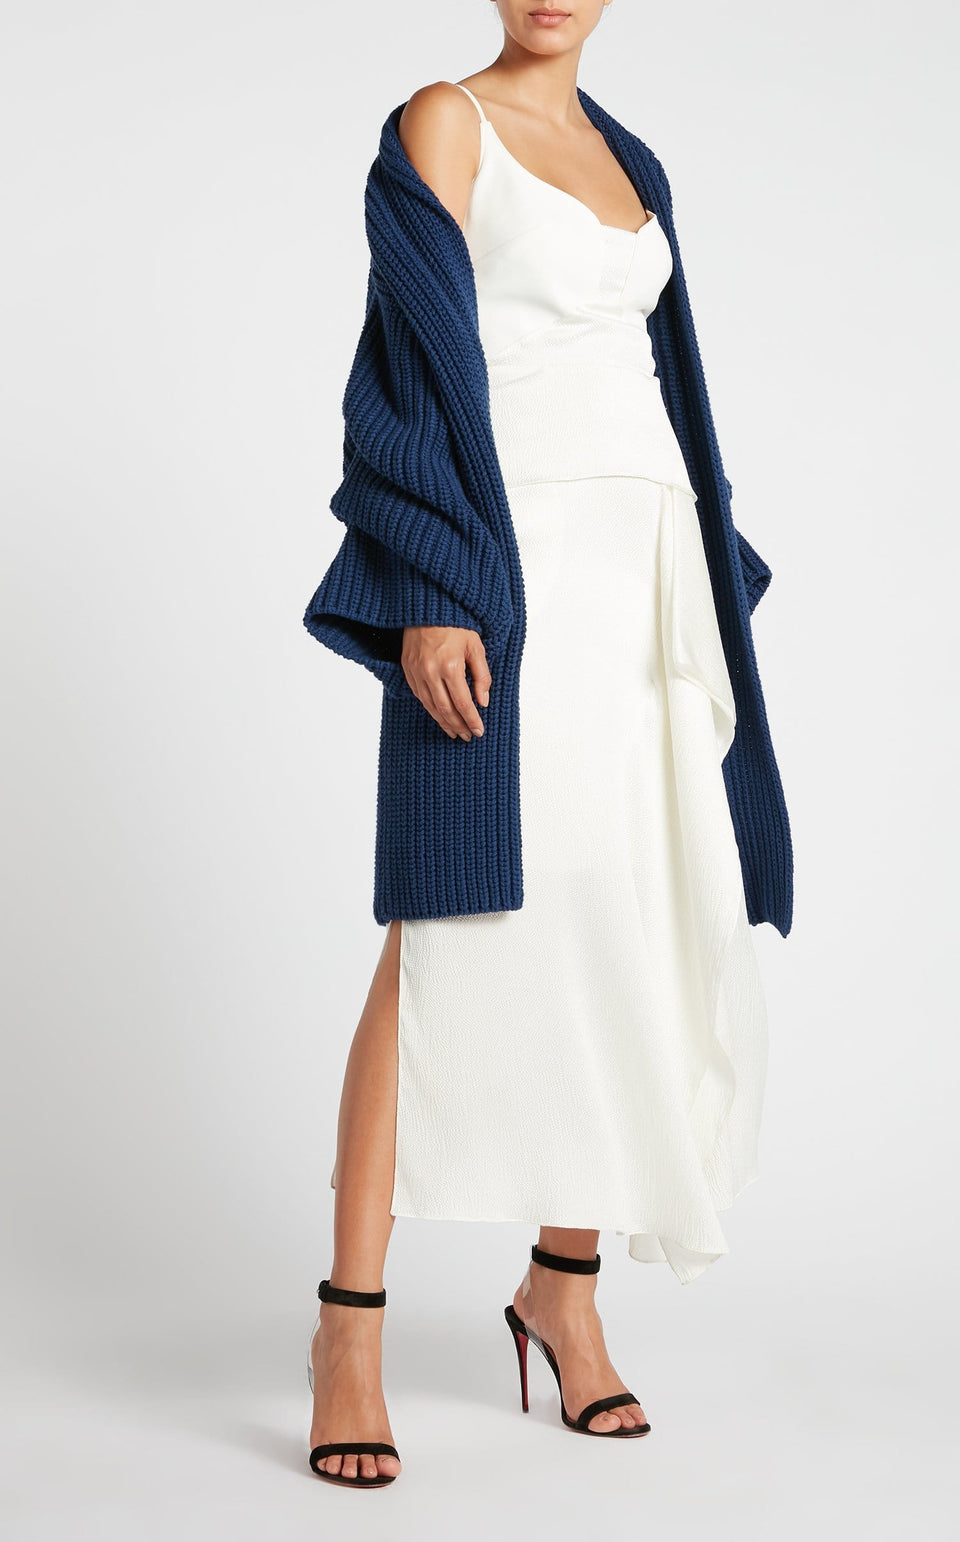 Ives Coat In Navy from Roland Mouret